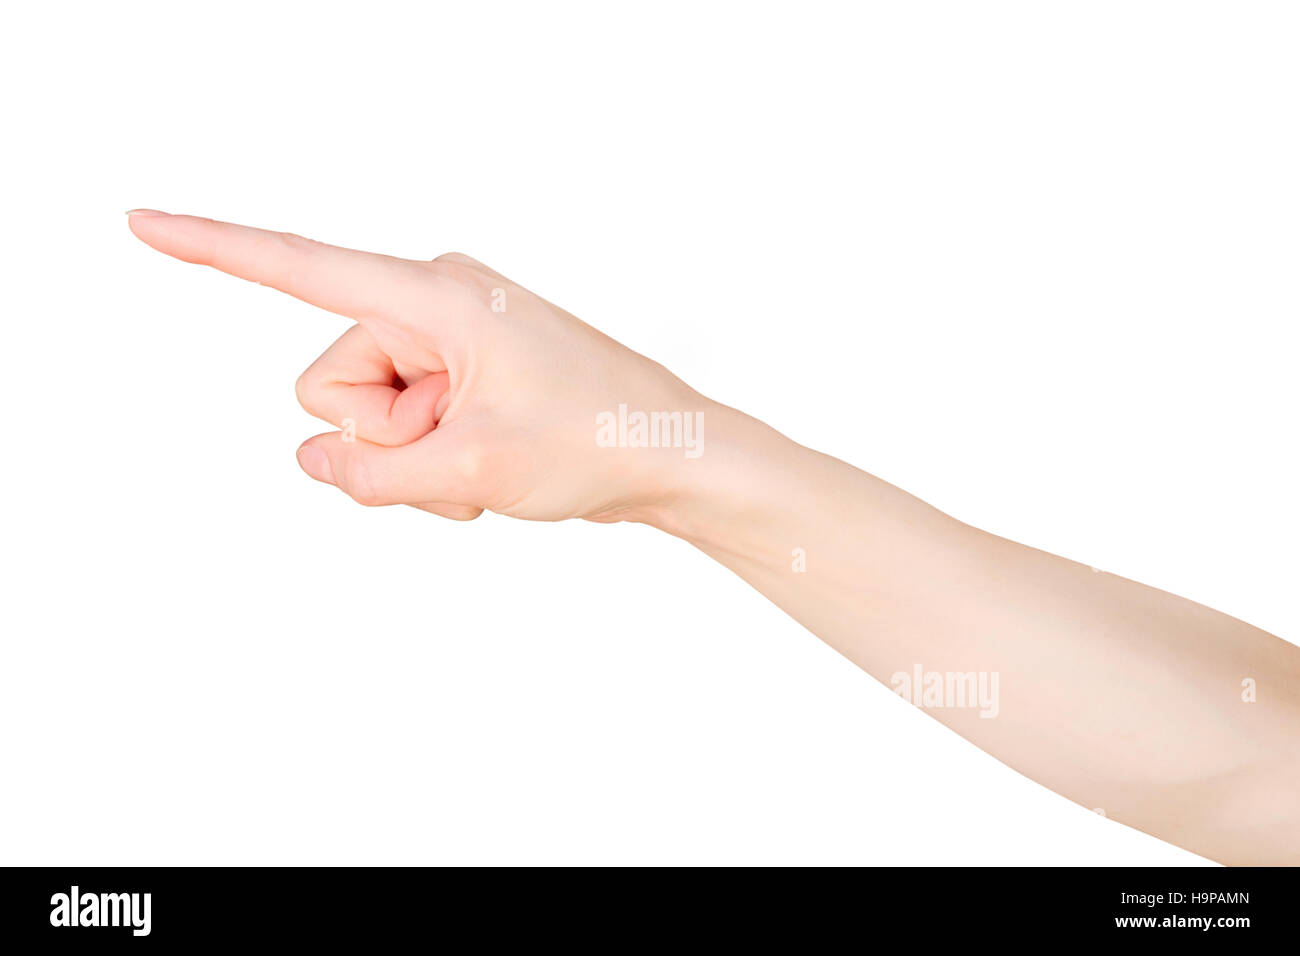 Pointing finger. Female hand pointing or touching something. Isolated on white with clipping path - Stock Image